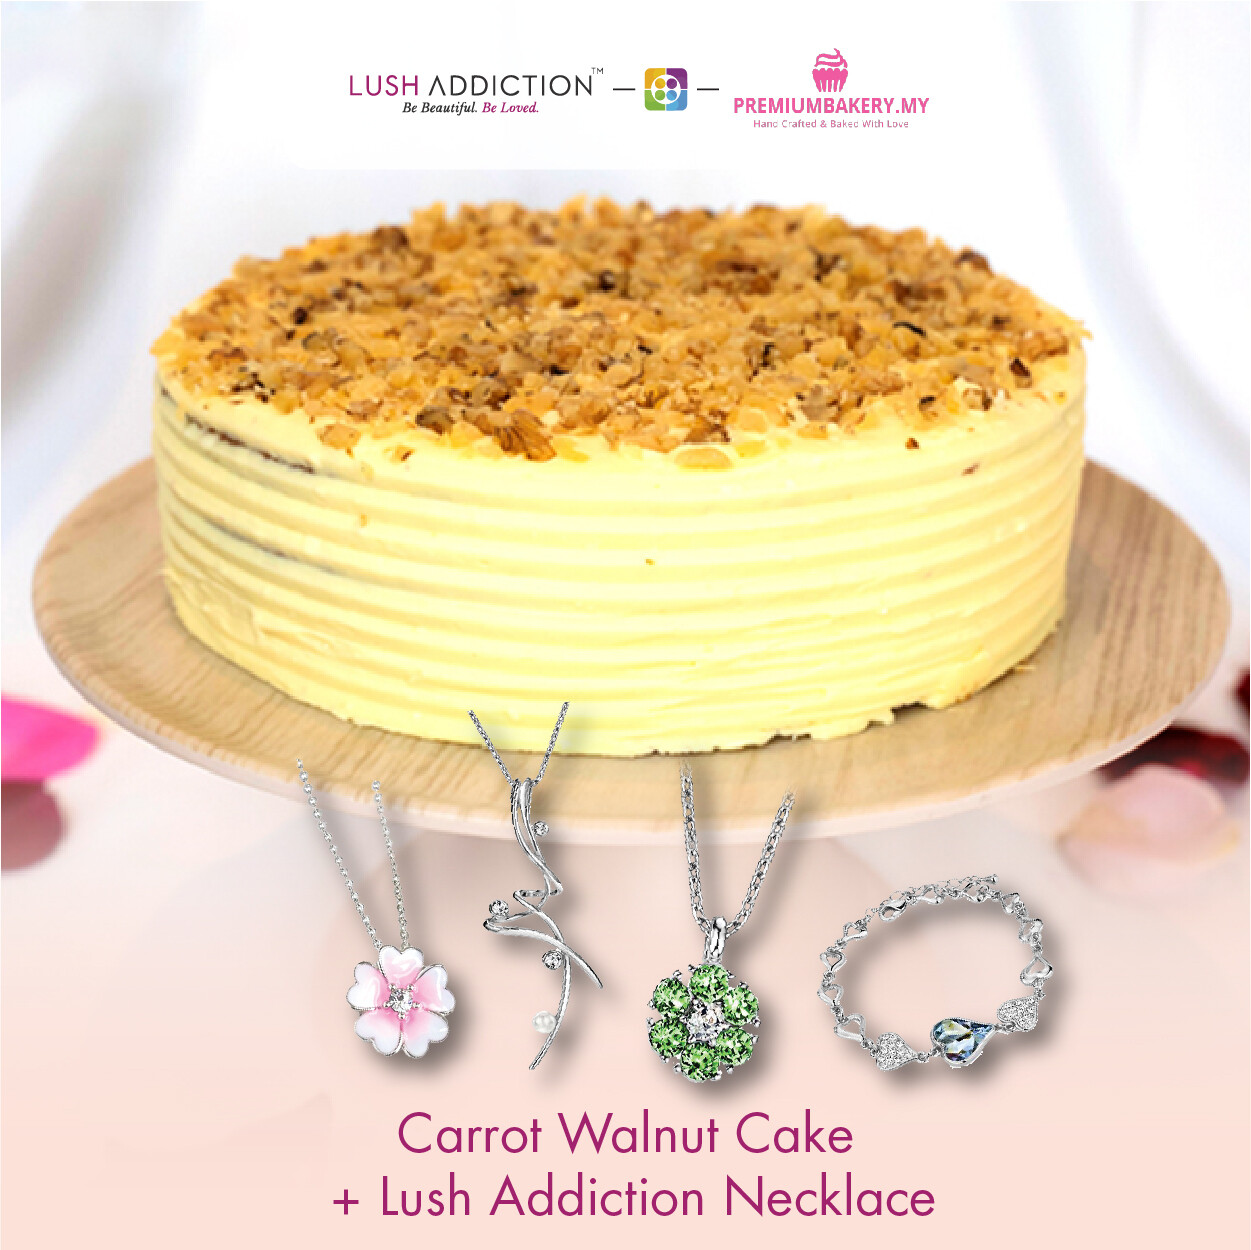 Carrot Walnut Cake + Lush Addiction Necklace (By: Premium Bakery  from KL)